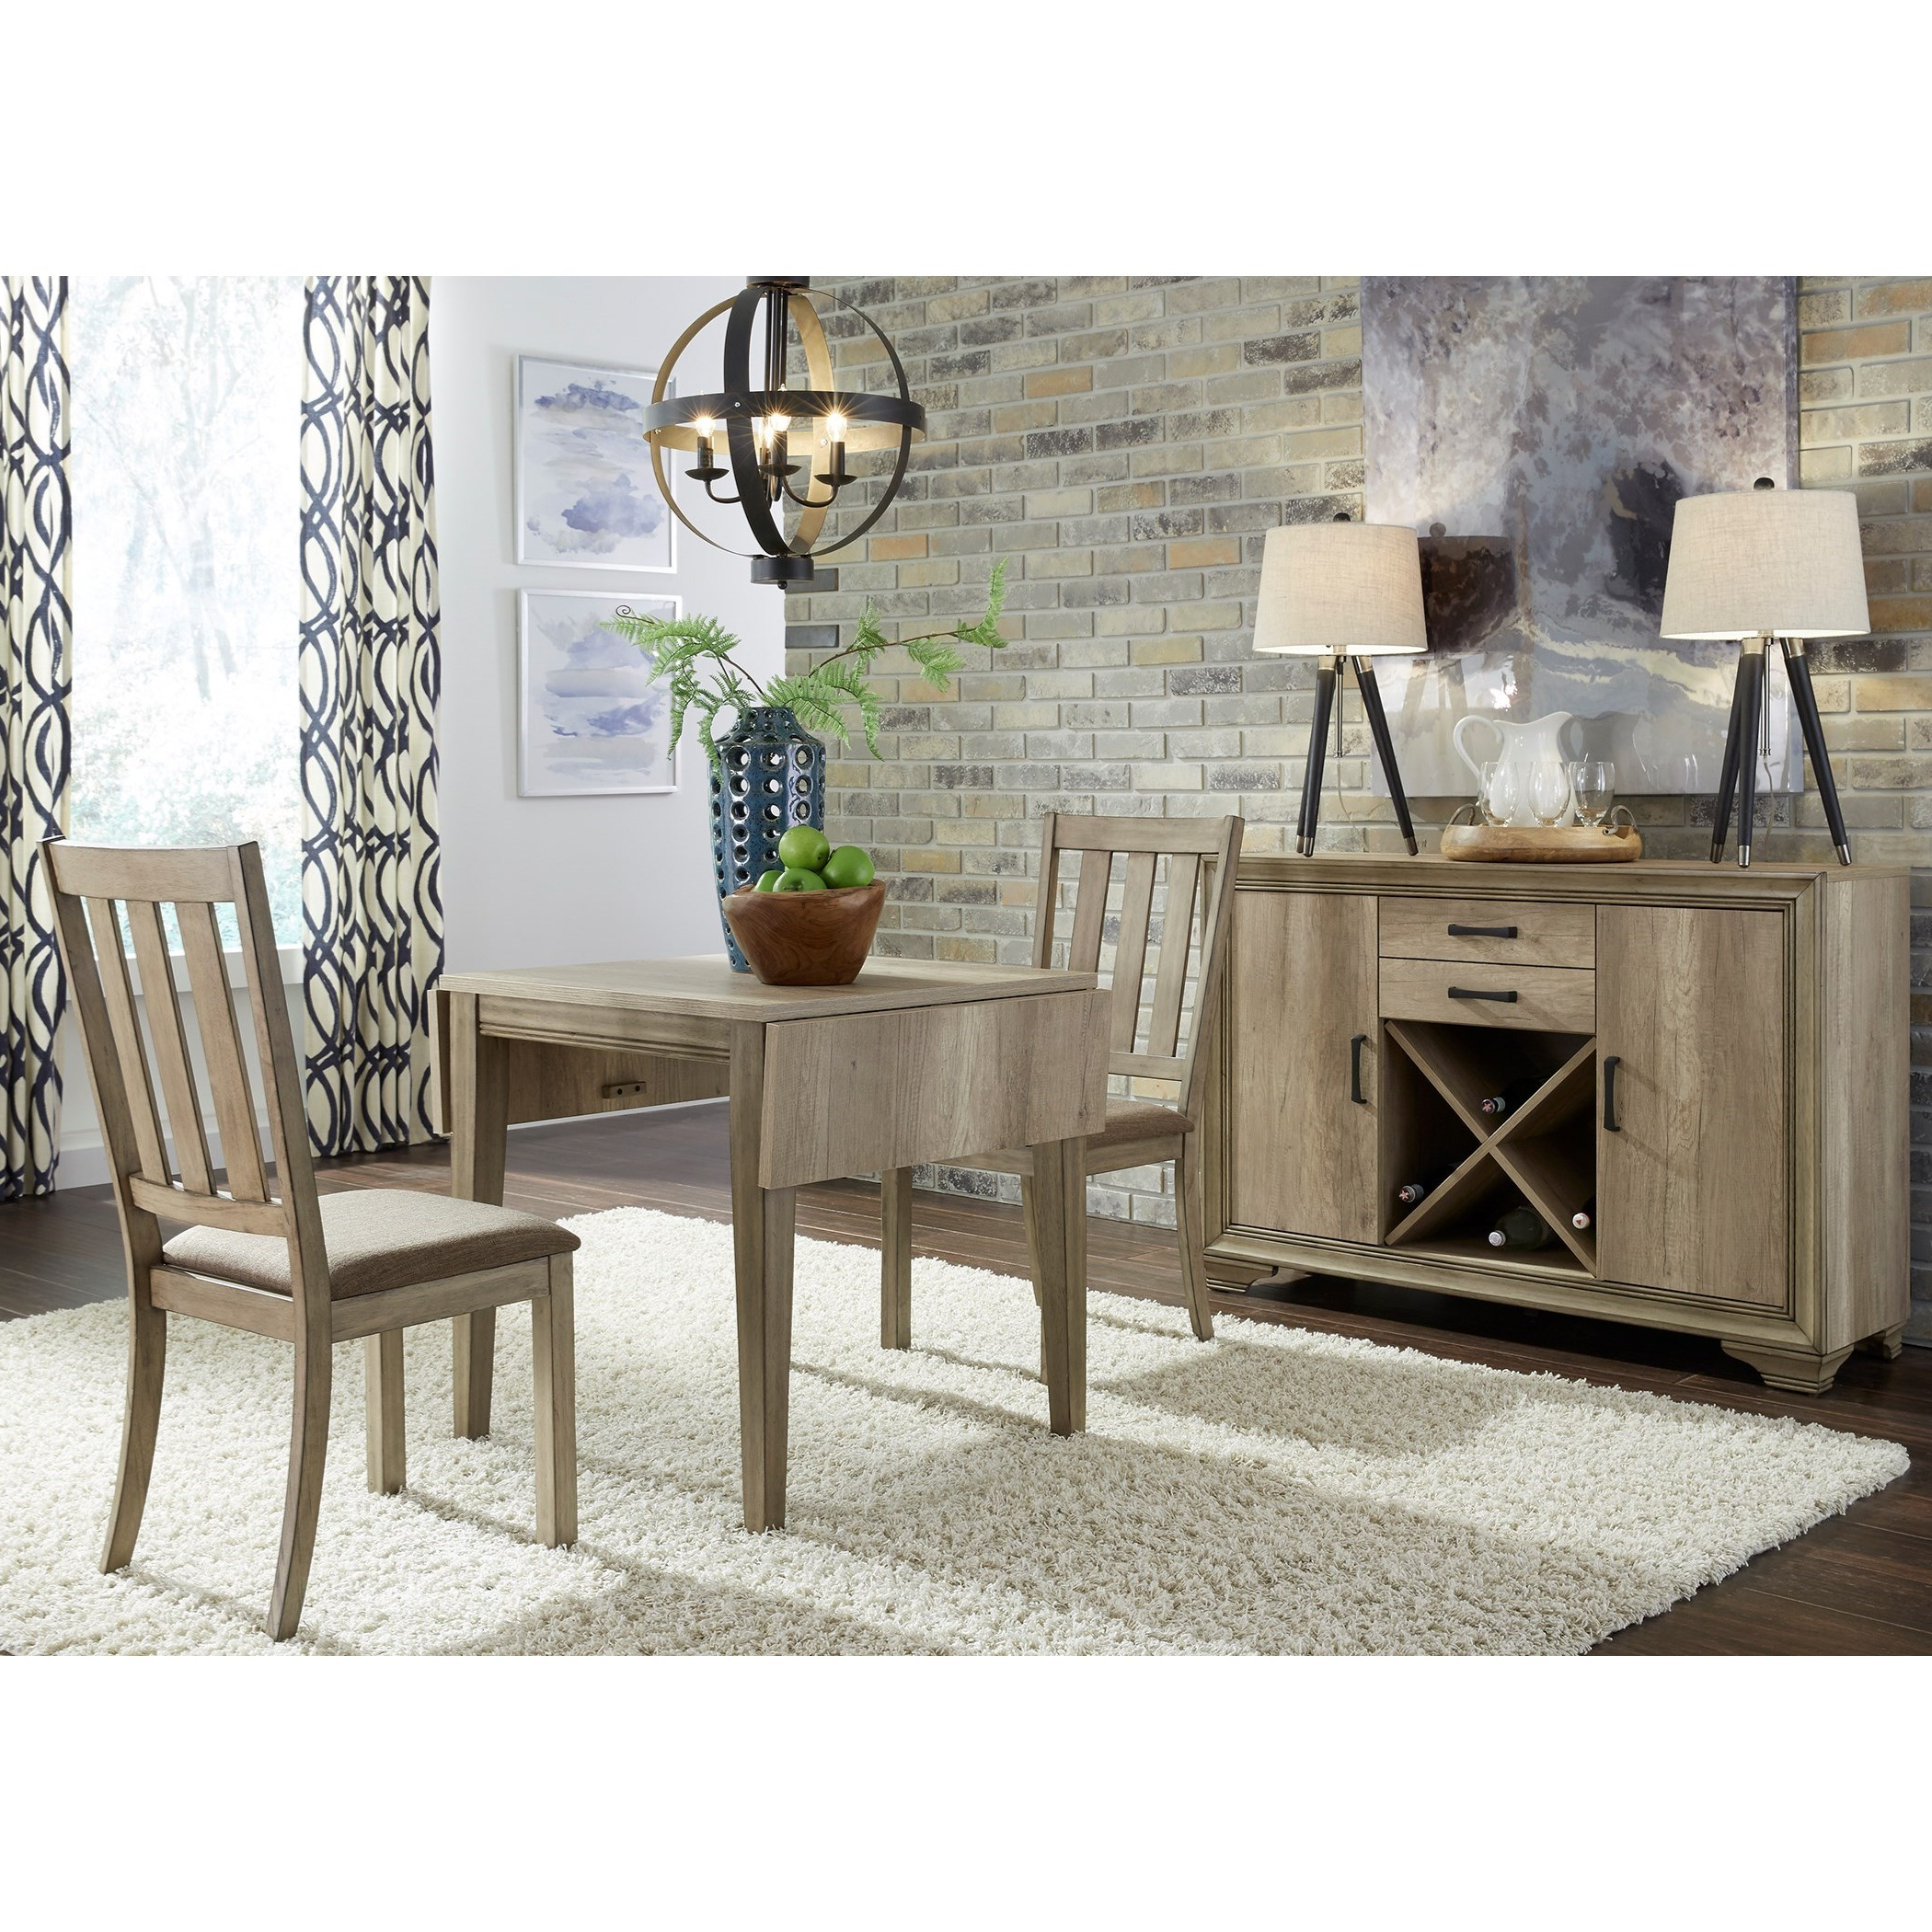 Best And Newest Transitional 4 Seating Double Drop Leaf Casual Dining Tables With Regard To Liberty Furniture Sun Valley 439 Dr 3dls 3 Piece Drop Leaf (View 16 of 30)